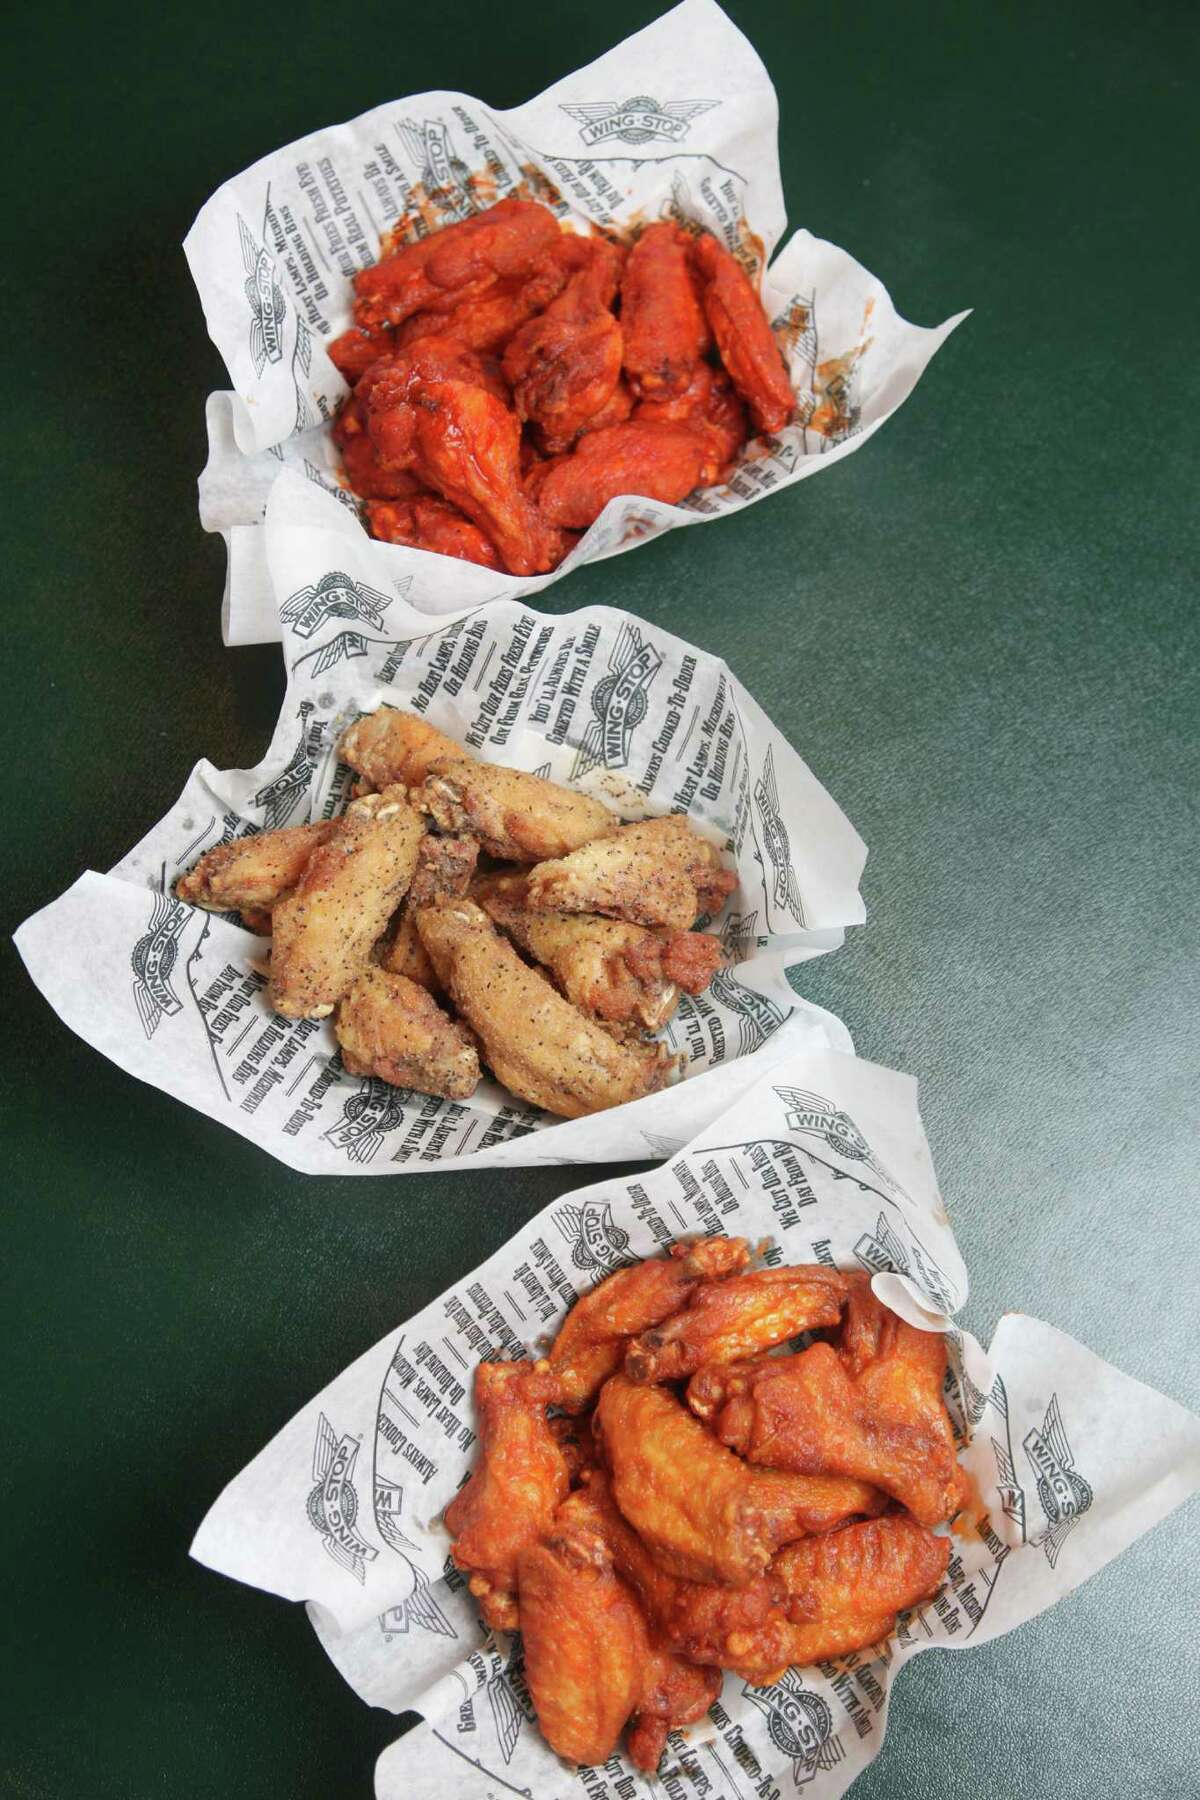 Among Wingstop's wings are (top to bottom) original hot, lemon pepper and mild, served with a variety of sauces and sides.